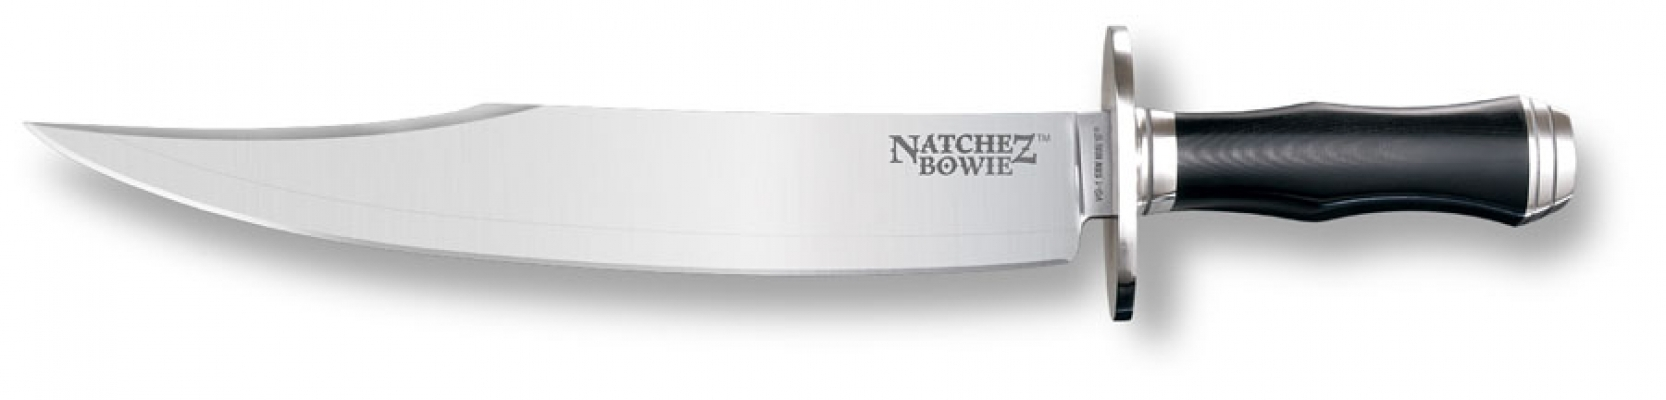 Cold Steel - Cutit Natchez Bowie